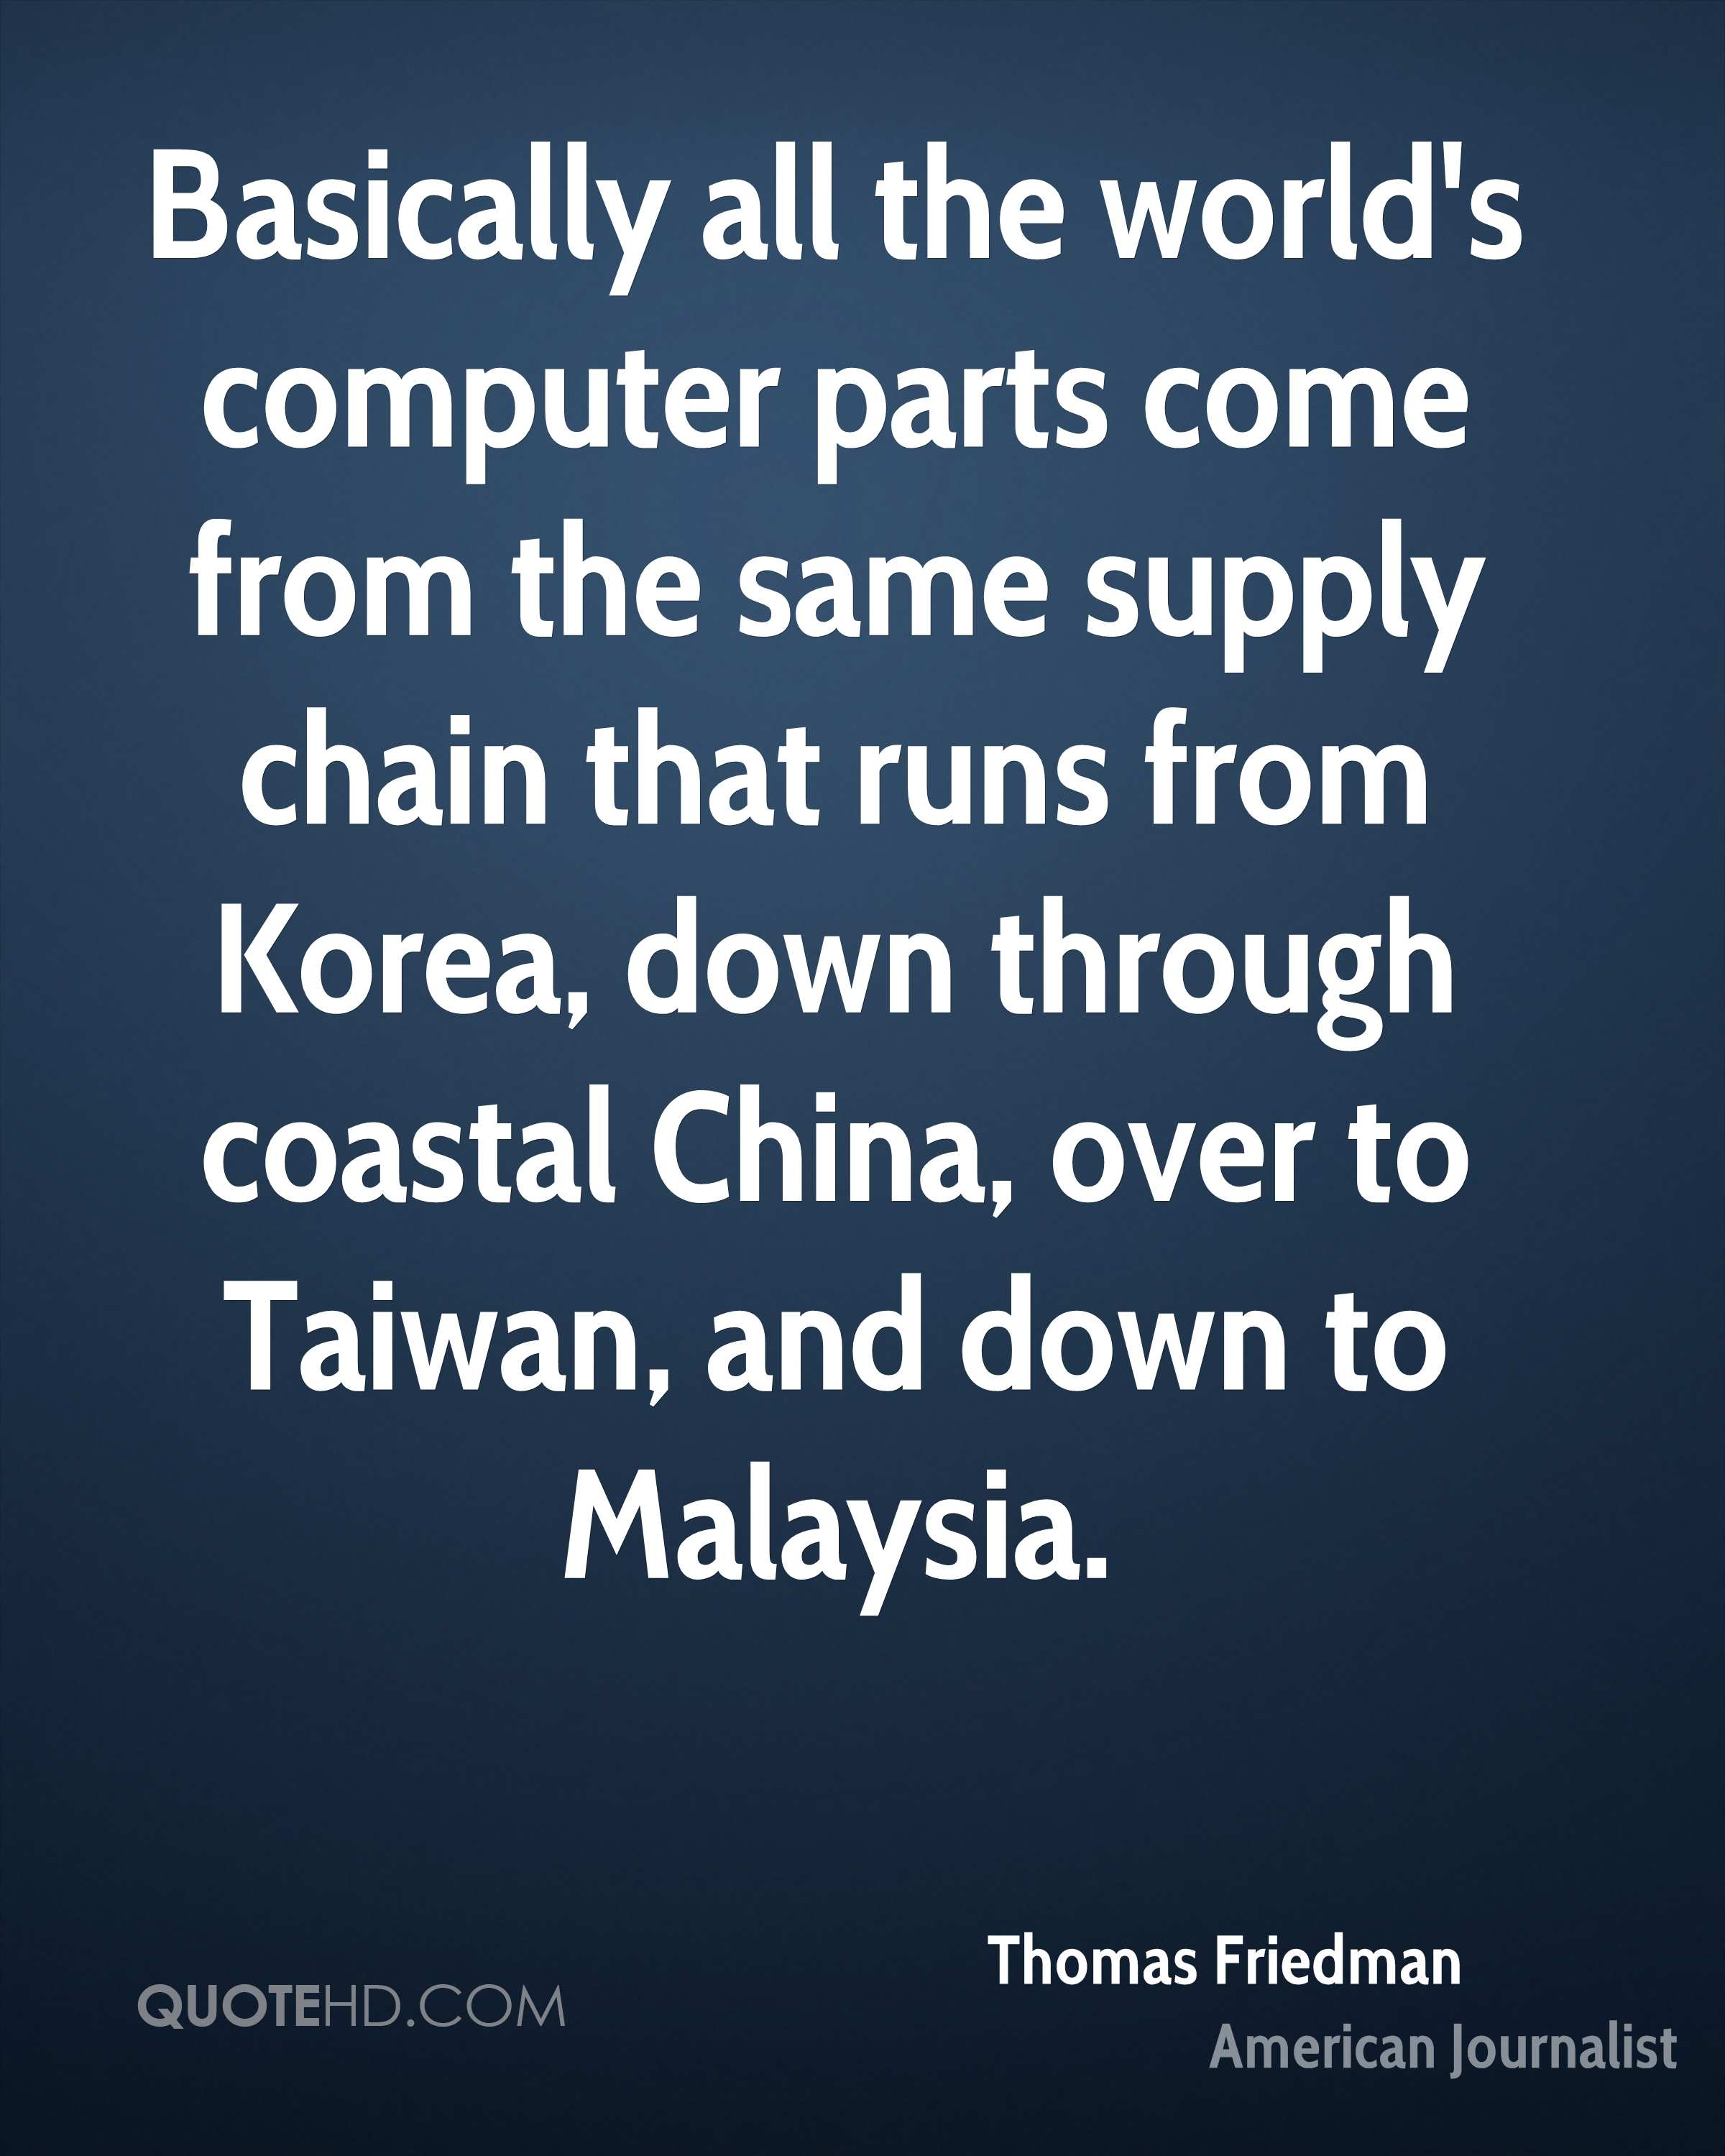 Basically all the world's computer parts come from the same supply chain that runs from Korea, down through coastal China, over to Taiwan, and down to Malaysia.